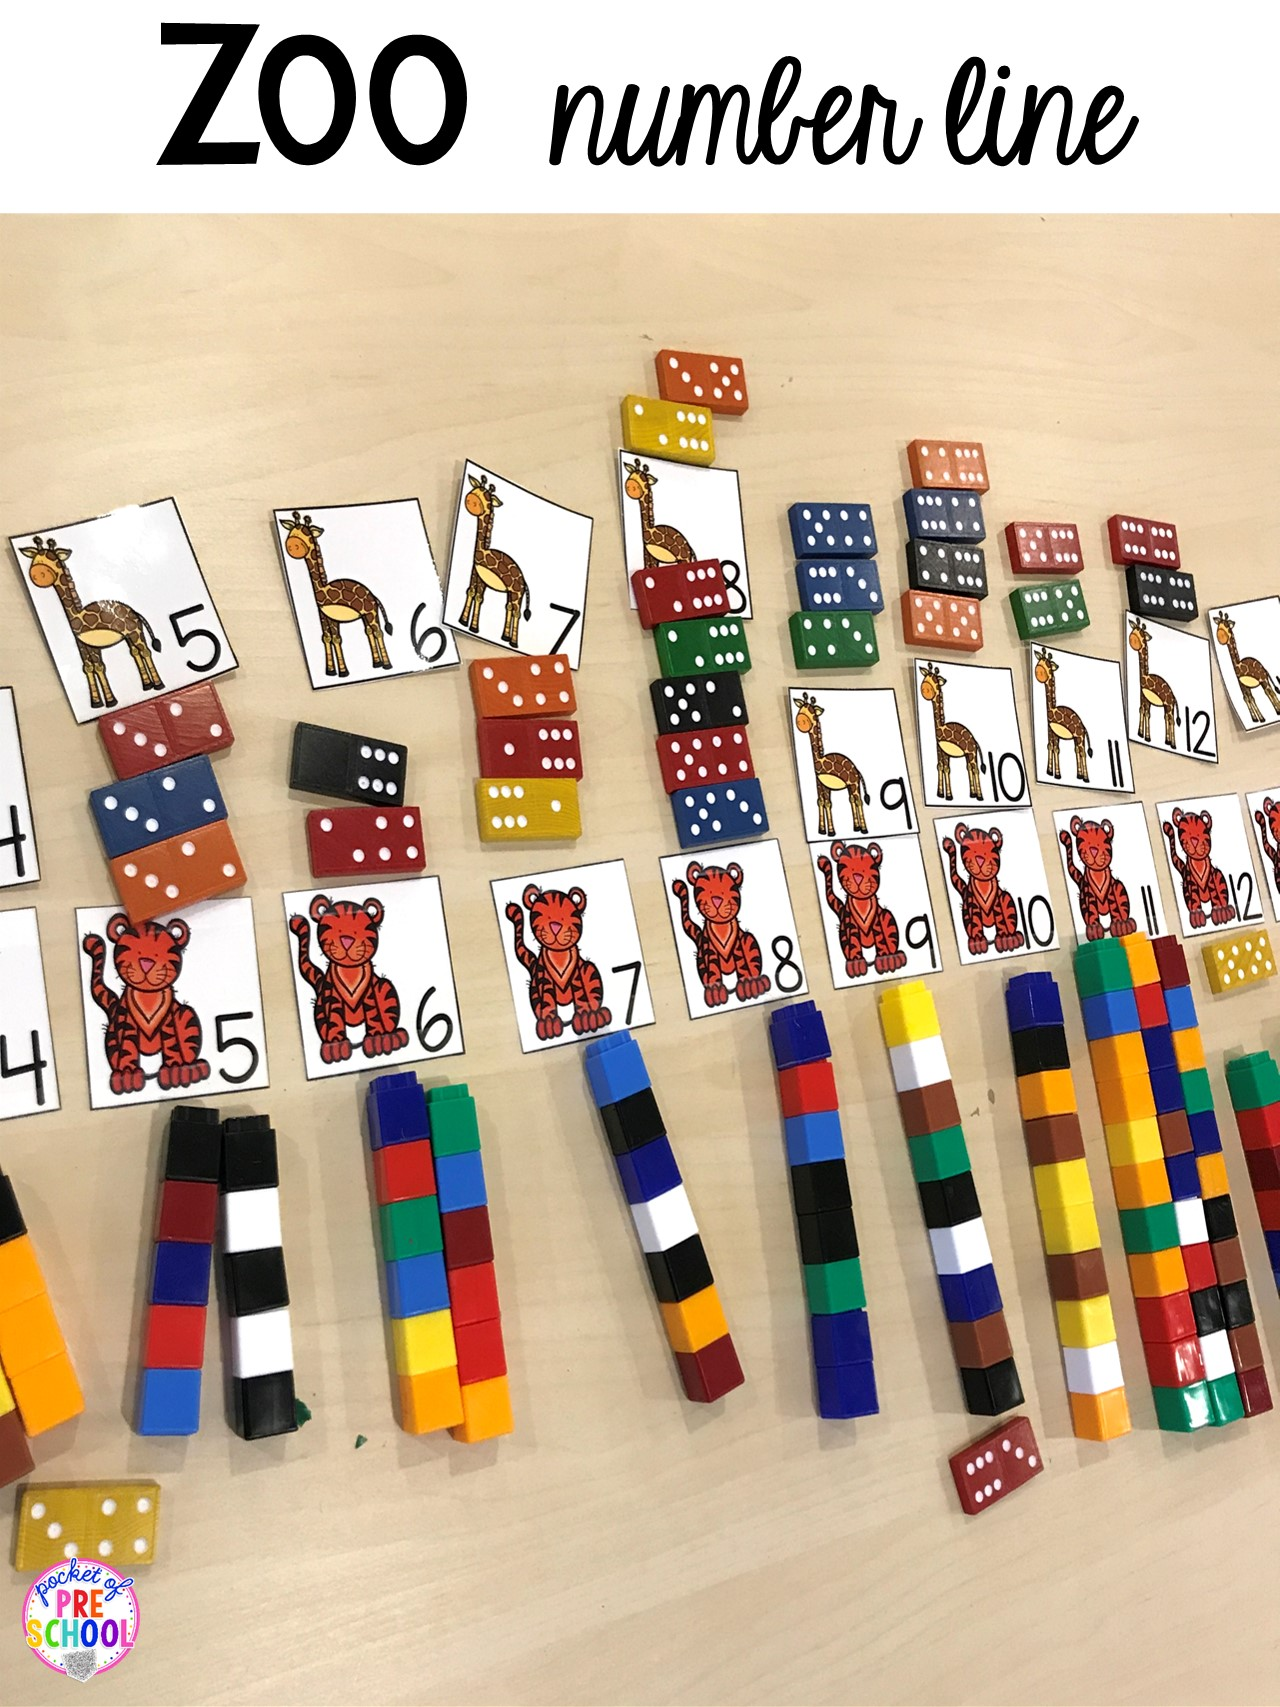 Zoo number line with math manipulatives and animal number cards for a zoo them to practice number identification and counting. #zootheme #preschool #prek